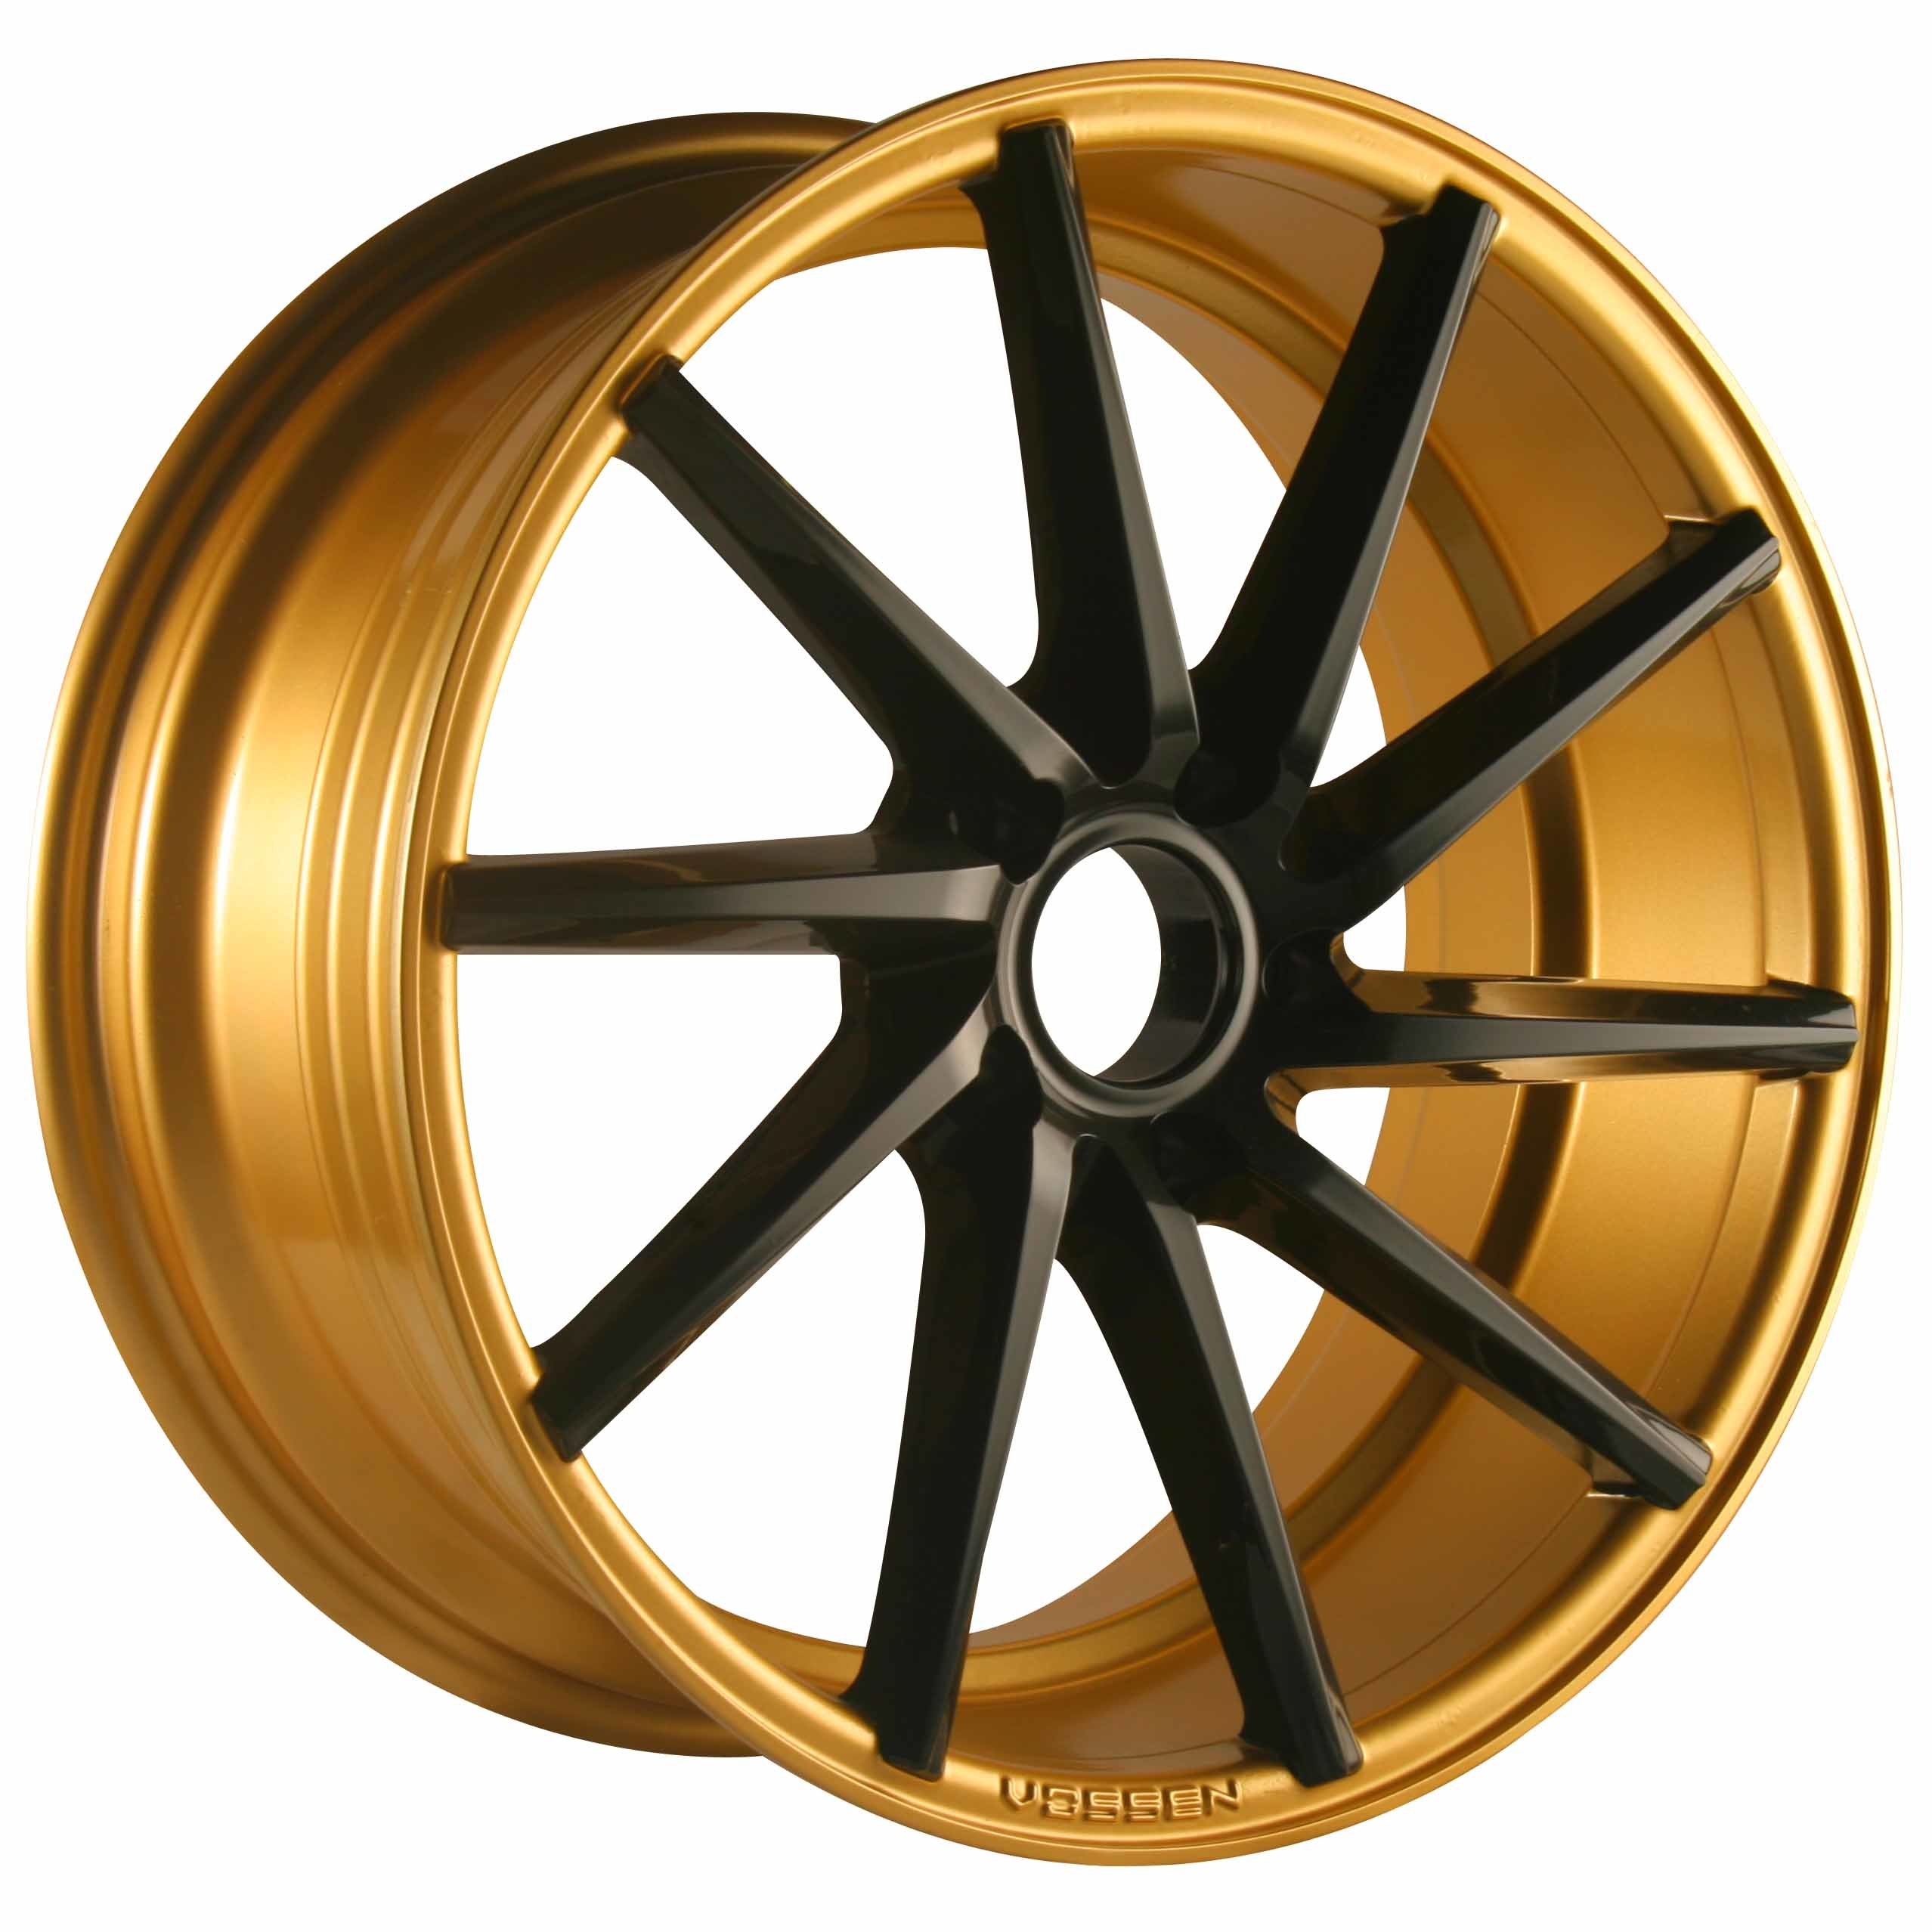 16inch Alloy Wheel for Aftermarket